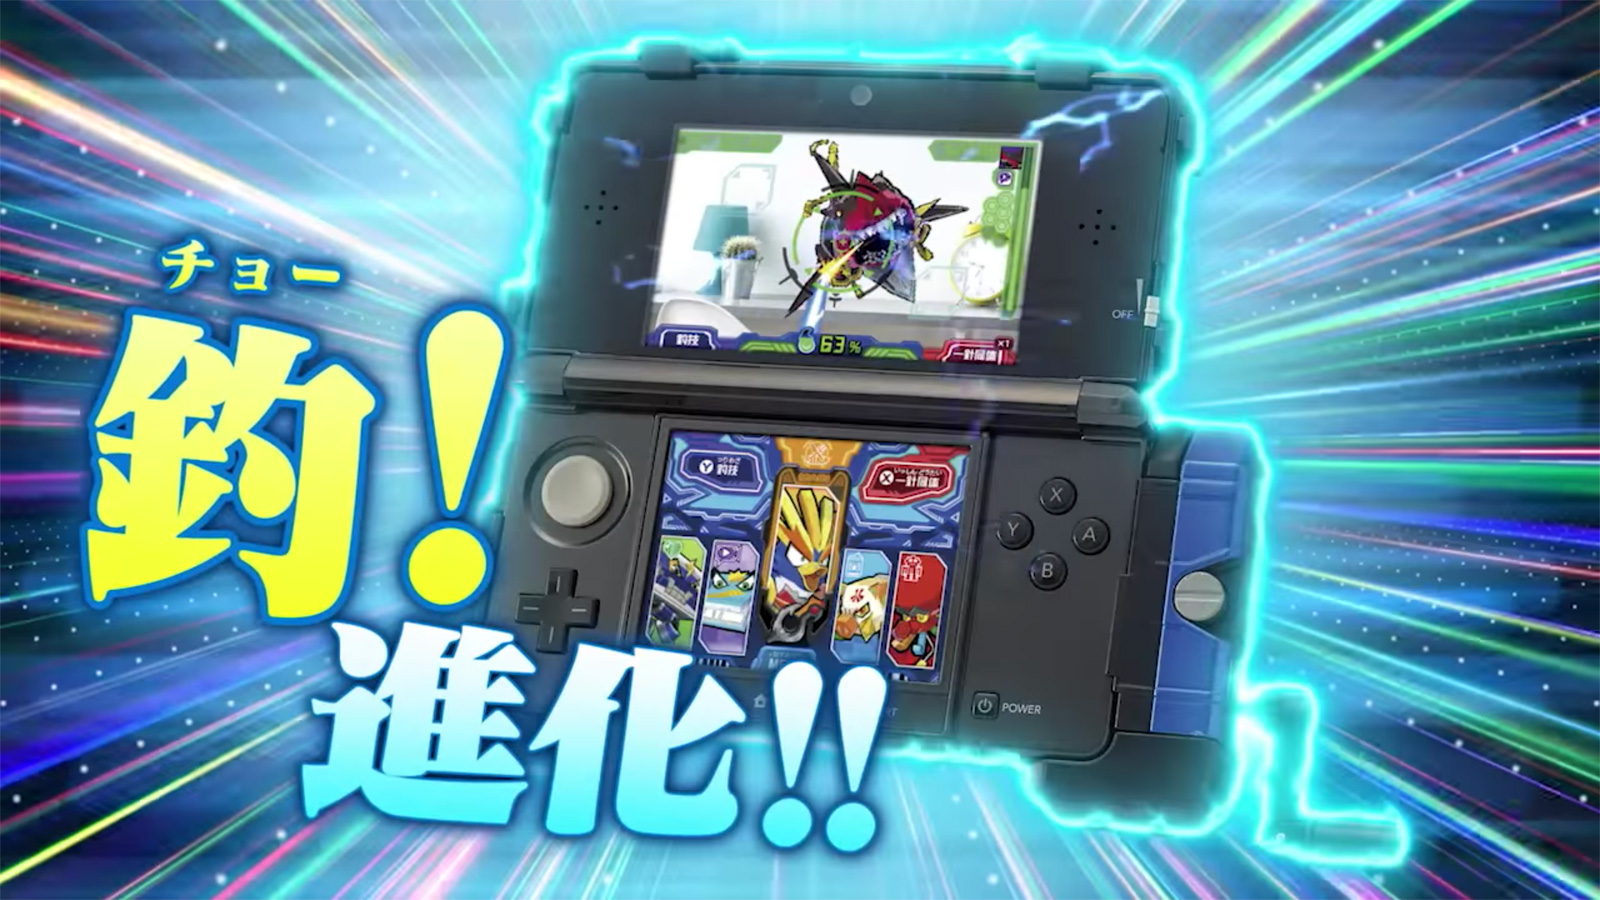 The next weird 3DS game includes a tiny fishing reel